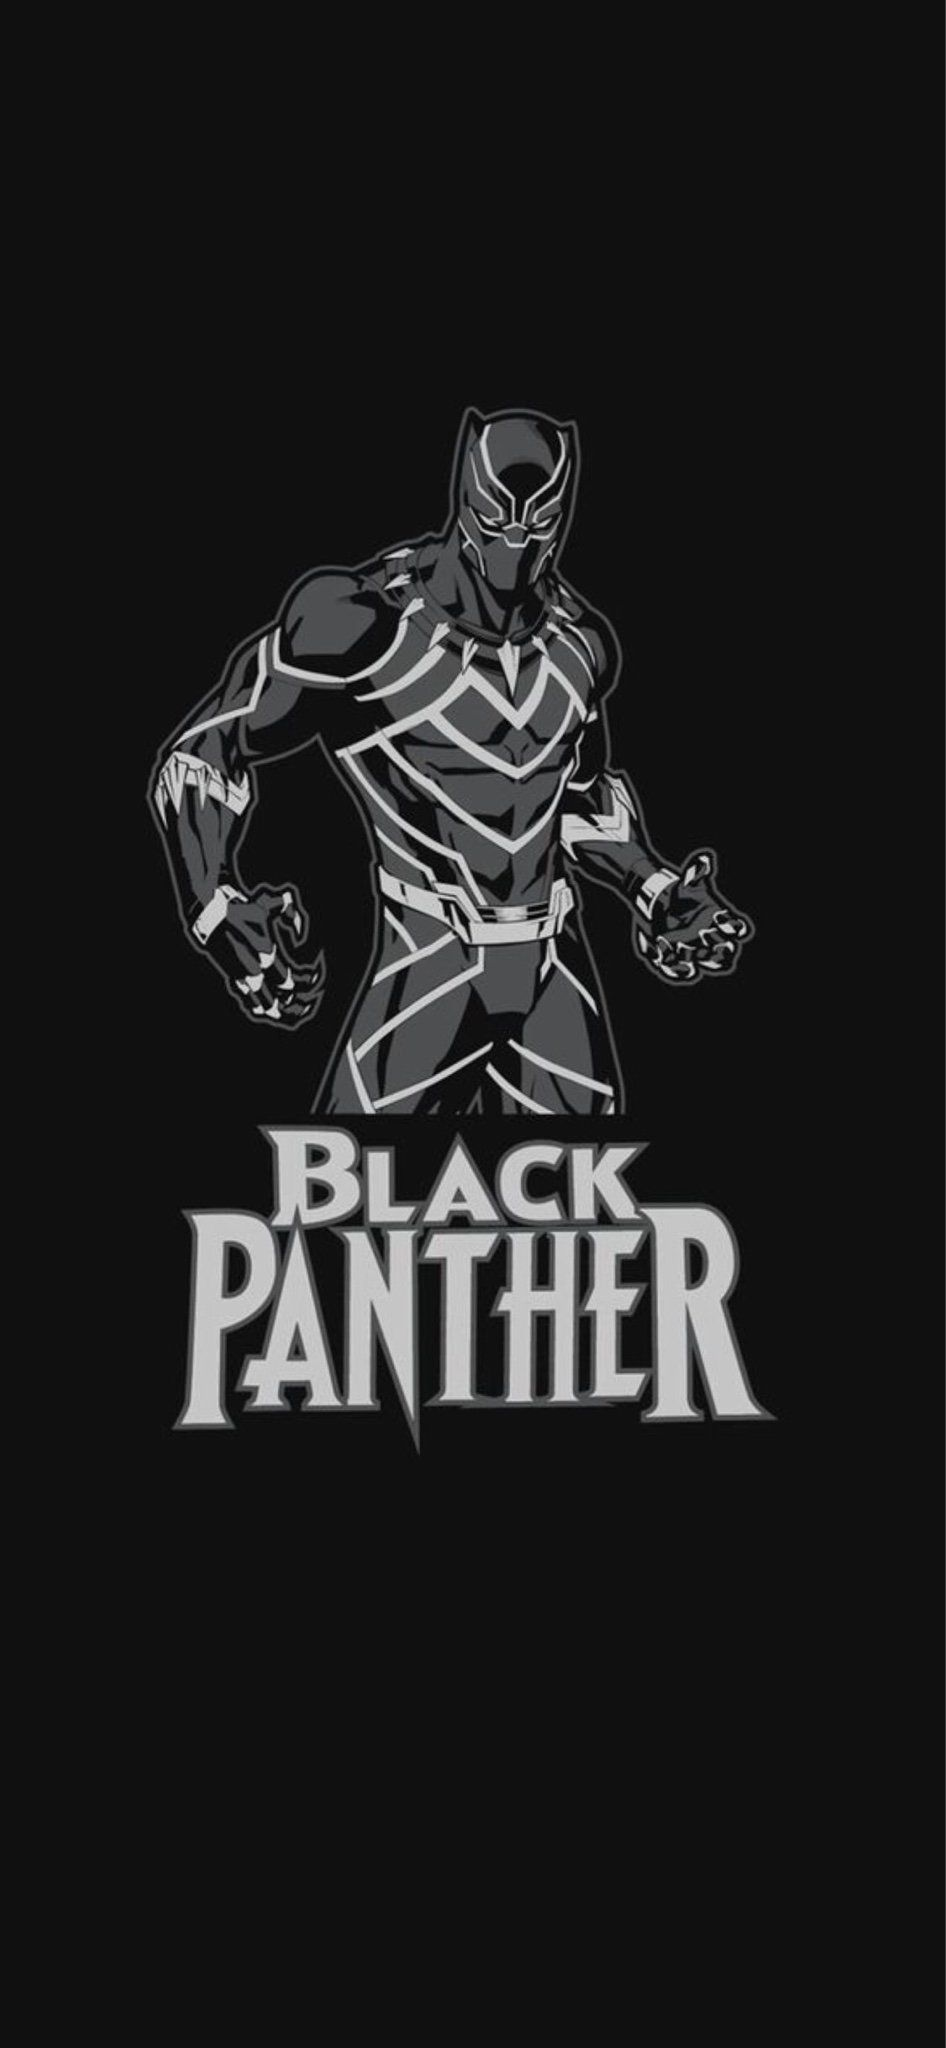 The Iphone X Wallpaper Thread Page 19 Iphone Ipad Ipod Forums At Imore Com Black Panther Marvel Black Panther Black Panther Art